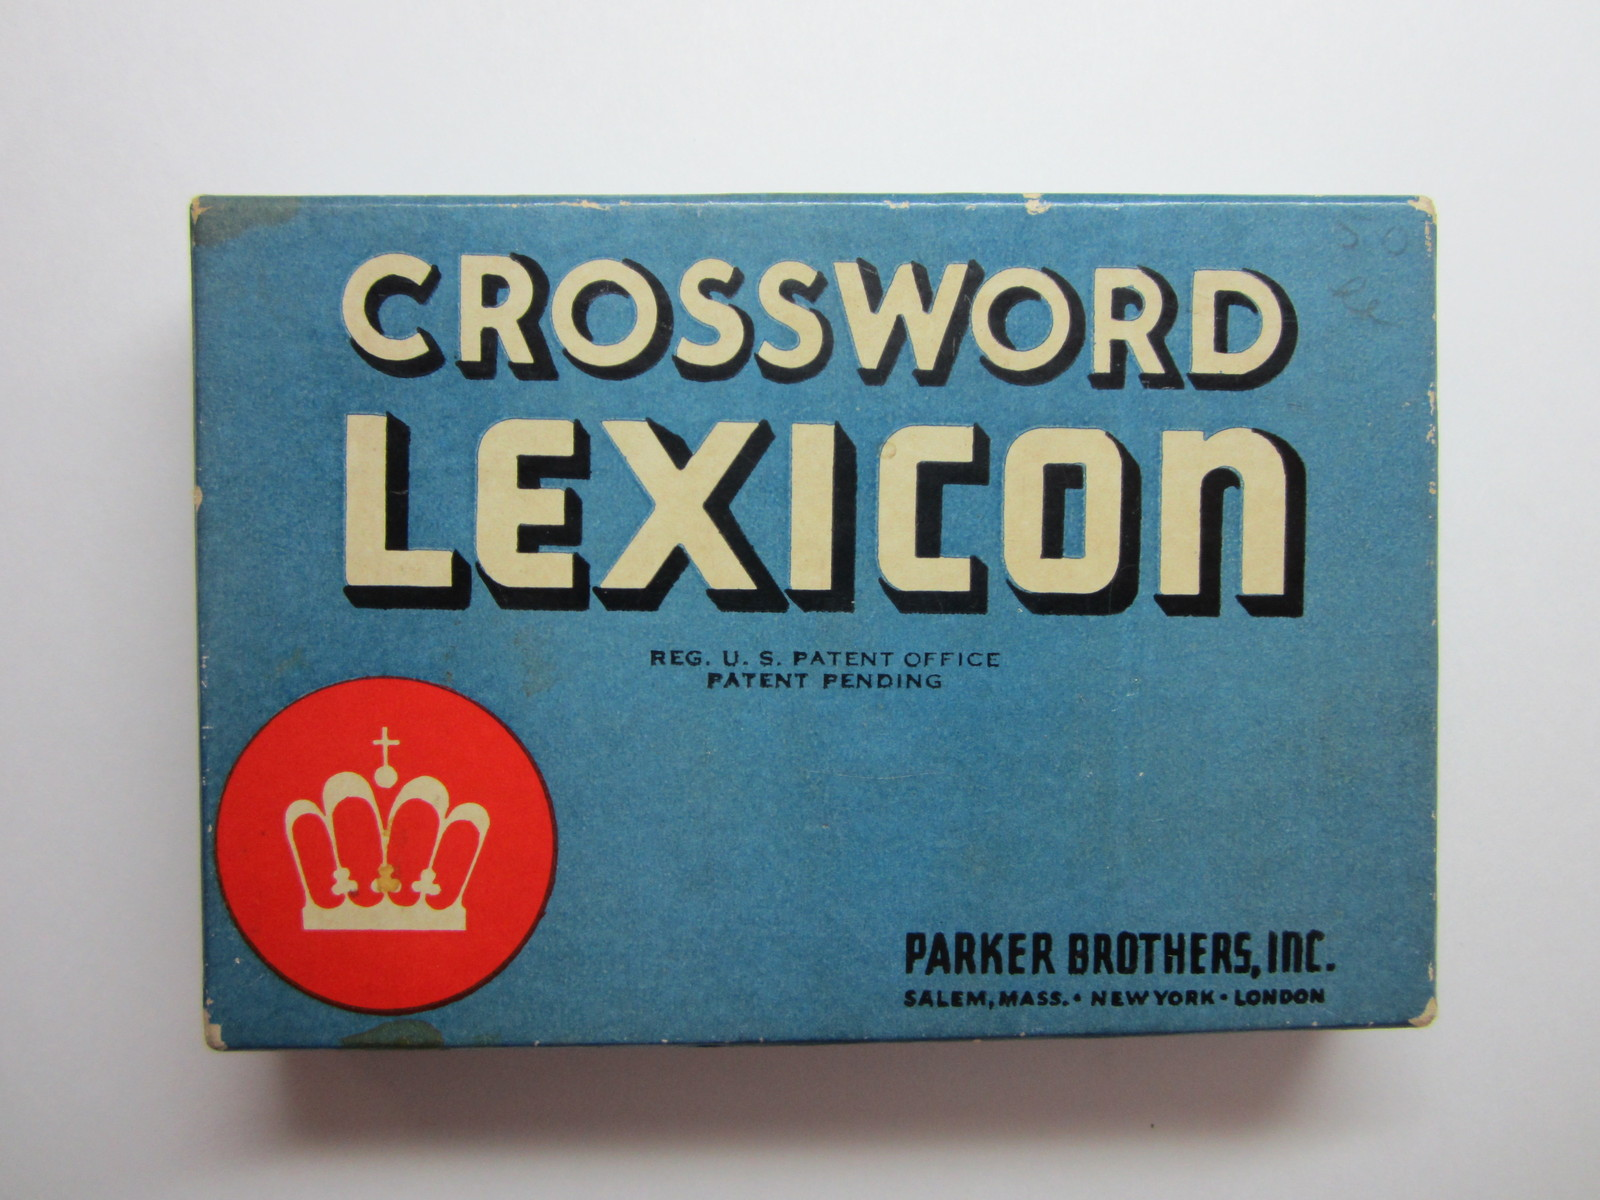 Vintage Parker Brothers Crossword Lexicon Card Game by Parker Brothers -1938 - $11.99